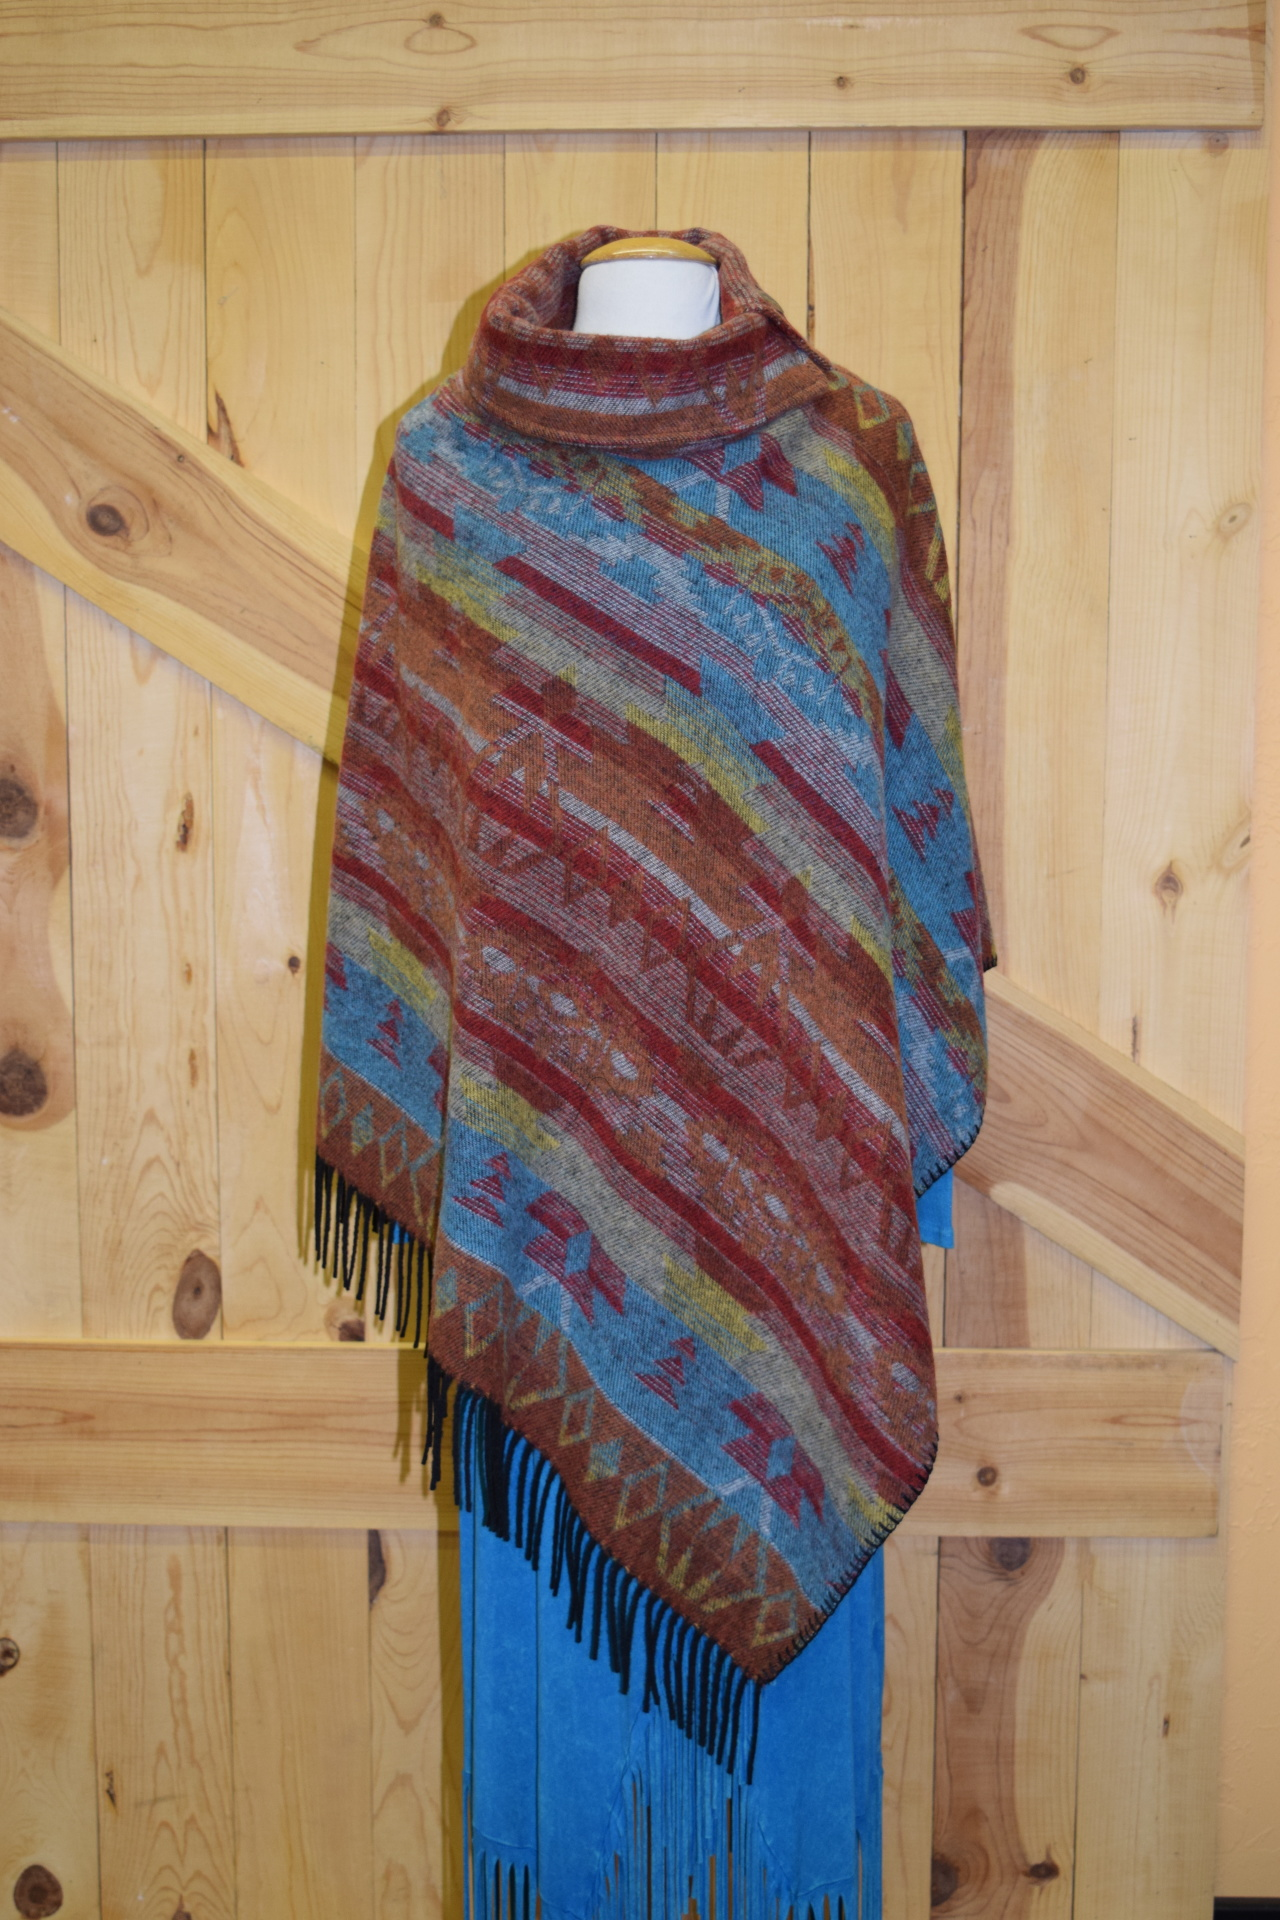 #208ASST. RUST SF FRINGE BUTTON COLLAR PONCHO - WAS $129.95 -- SALE $99.95